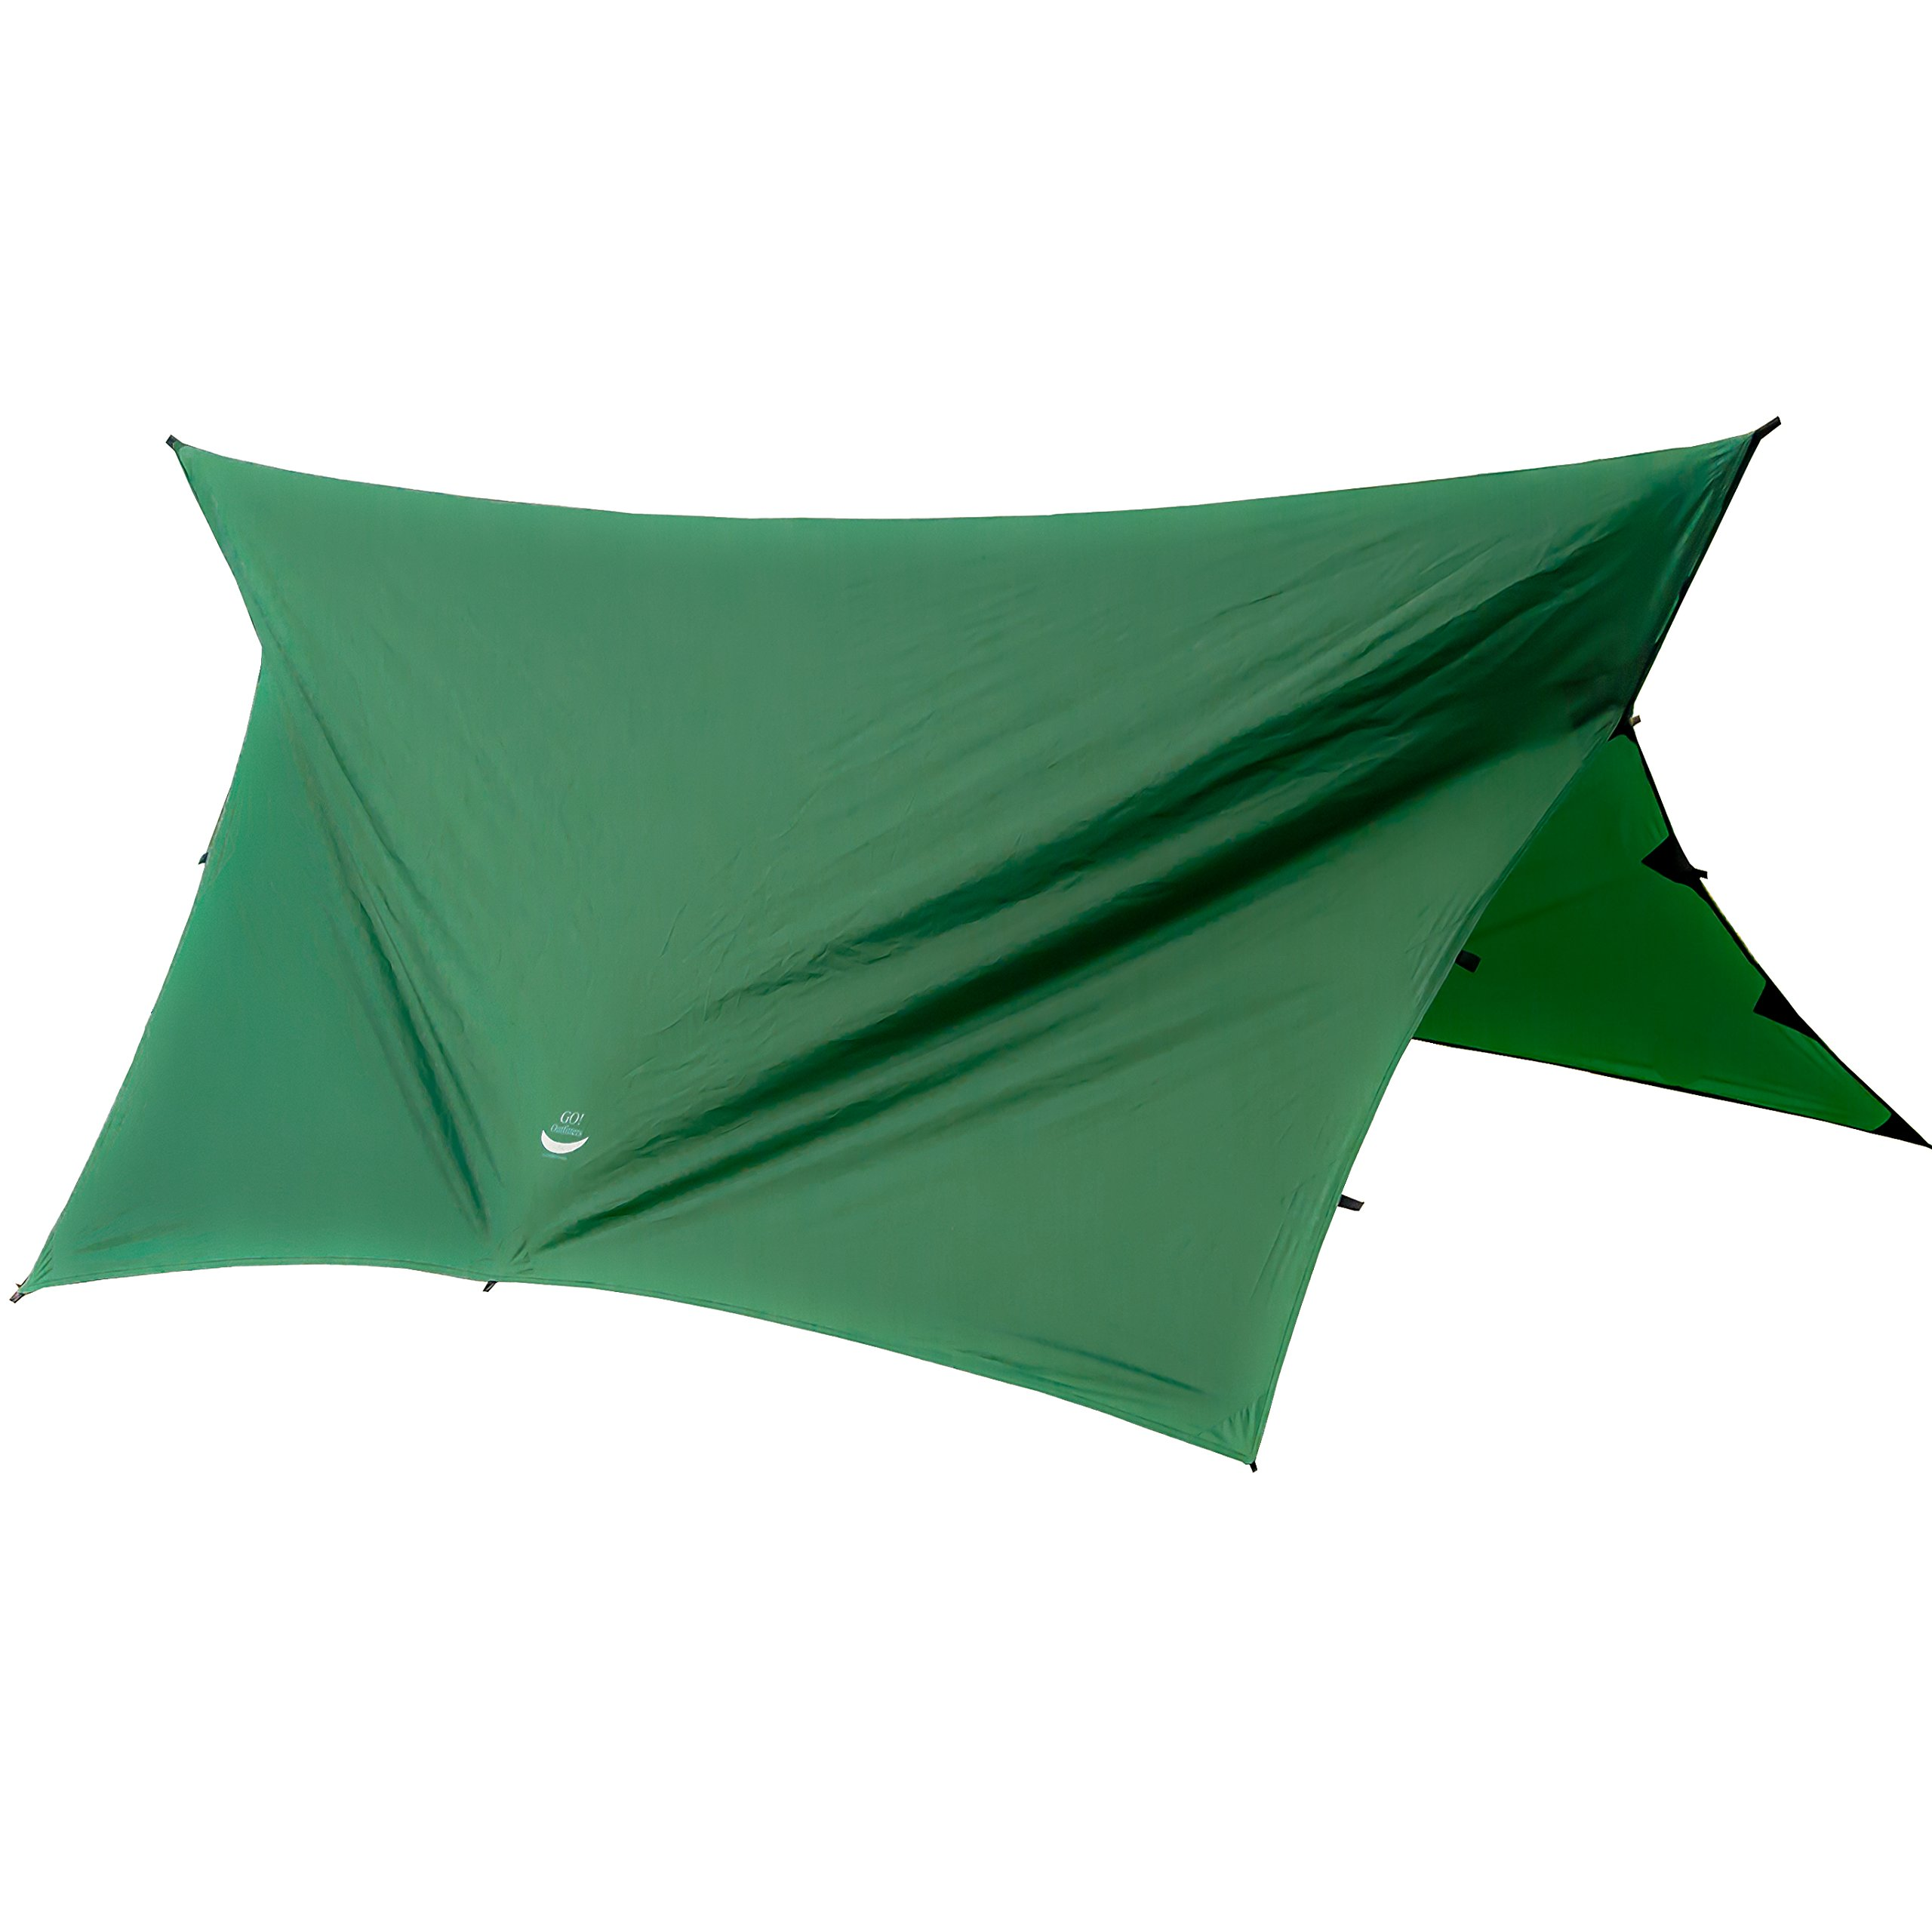 Go Outfitters Apex Camping Shelter/Hammock Tarp (Forest Green) by Go Outfitters